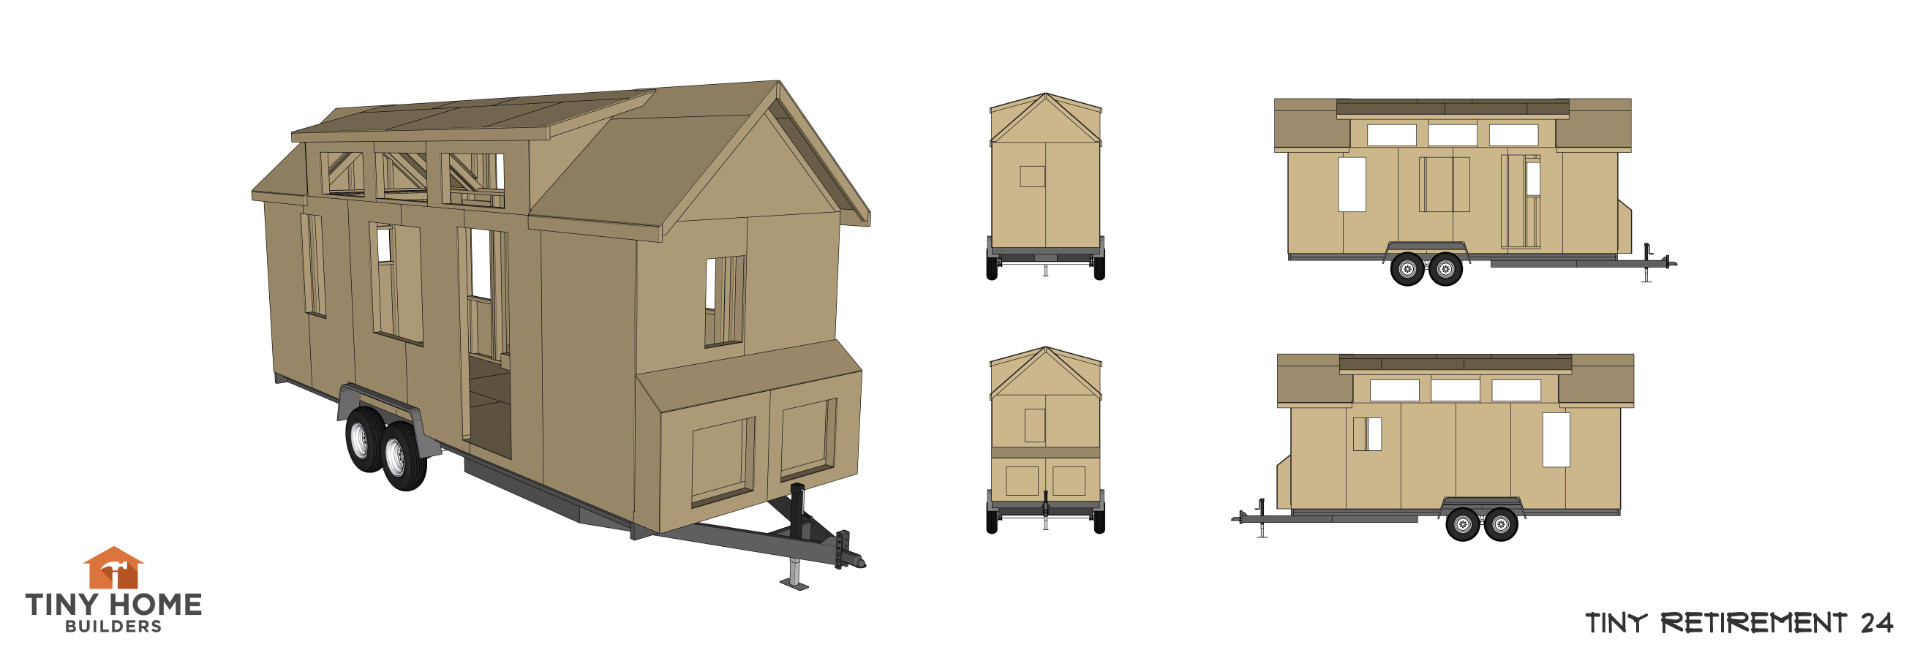 Tiny House With Garage Plans Tiny House Plans Tiny Home Builders